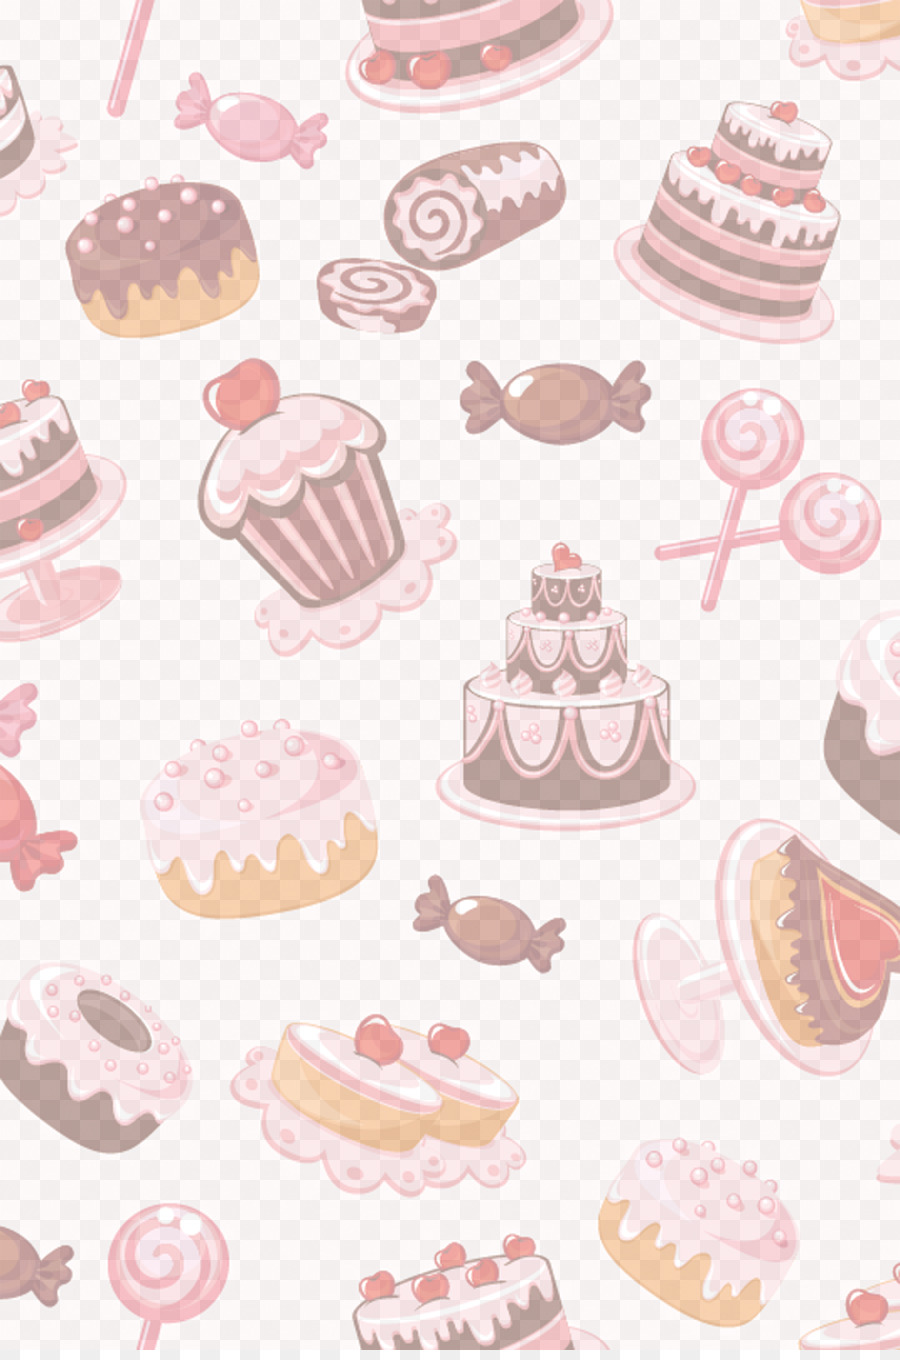 Muffin Dessert Cake Candy Cake Background Png Download